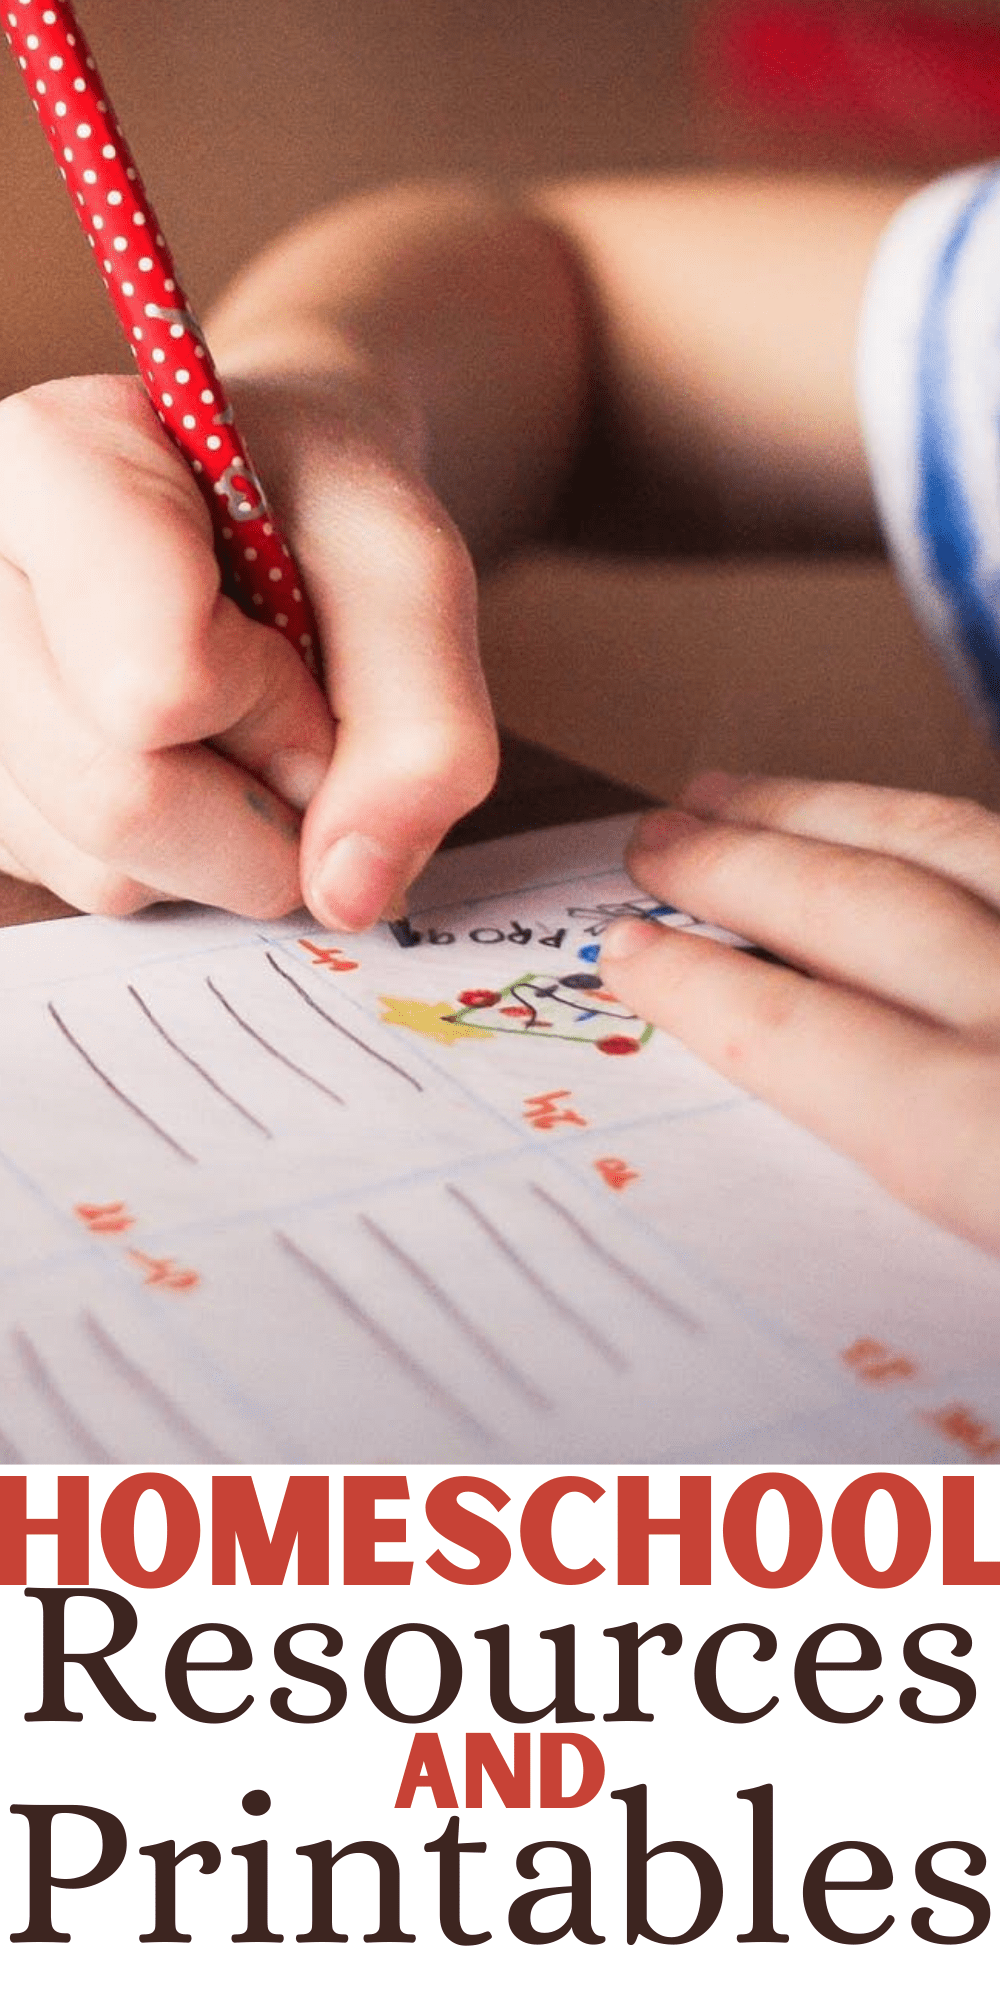 Resources And Printables For Homeschool Families